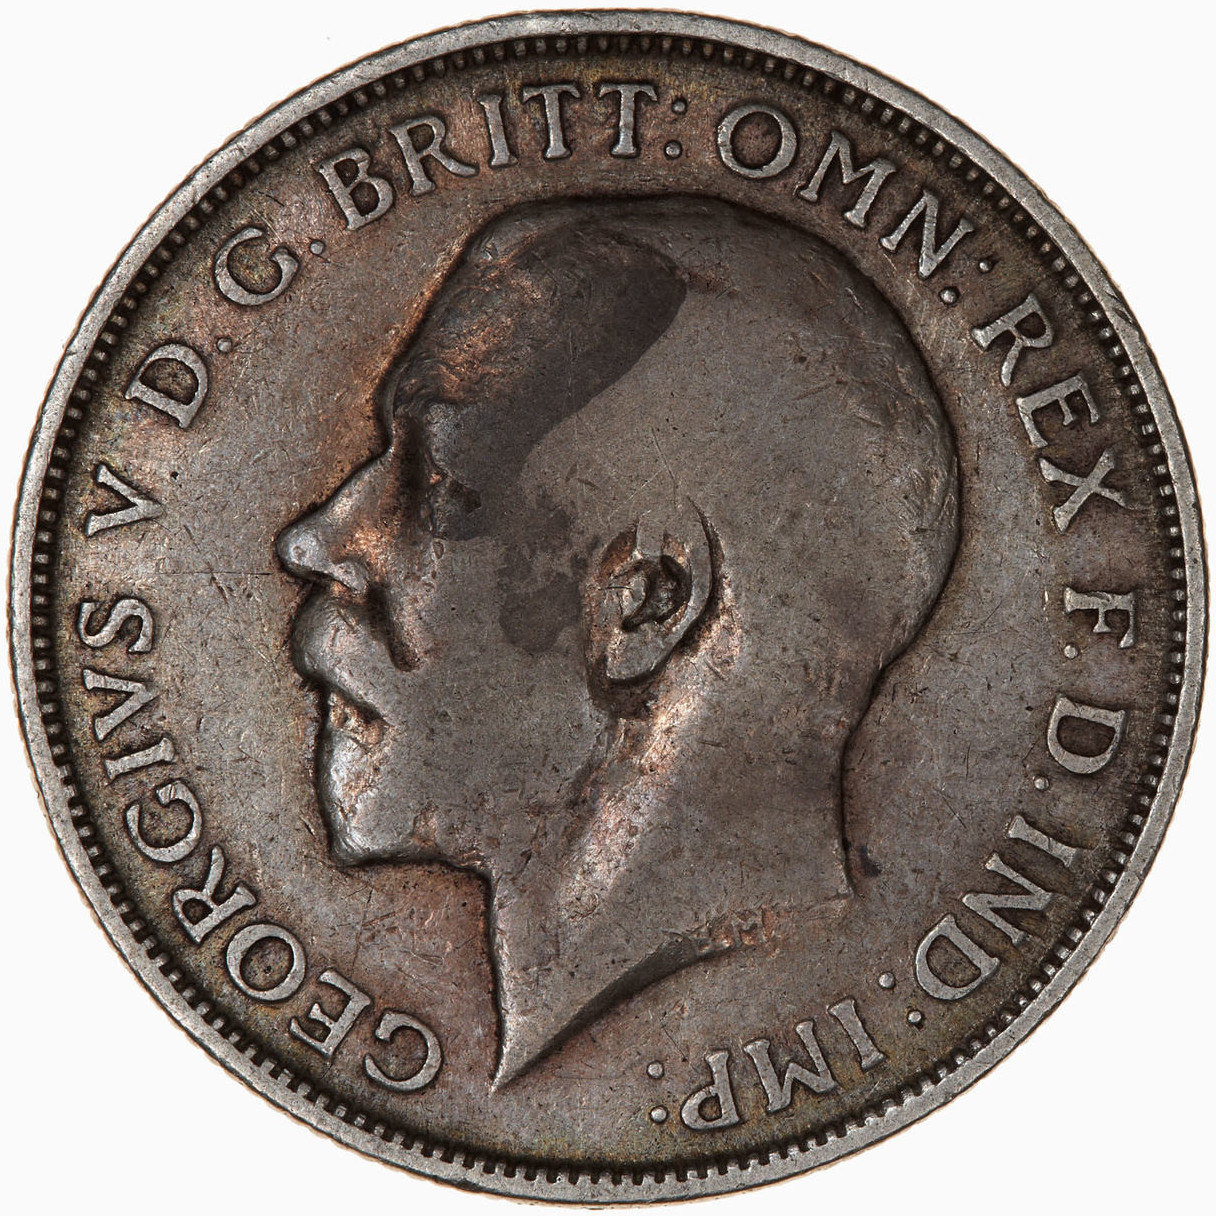 Florin 1915: Photo Coin - Florin (2 Shillings), George V, Great Britain, 1915